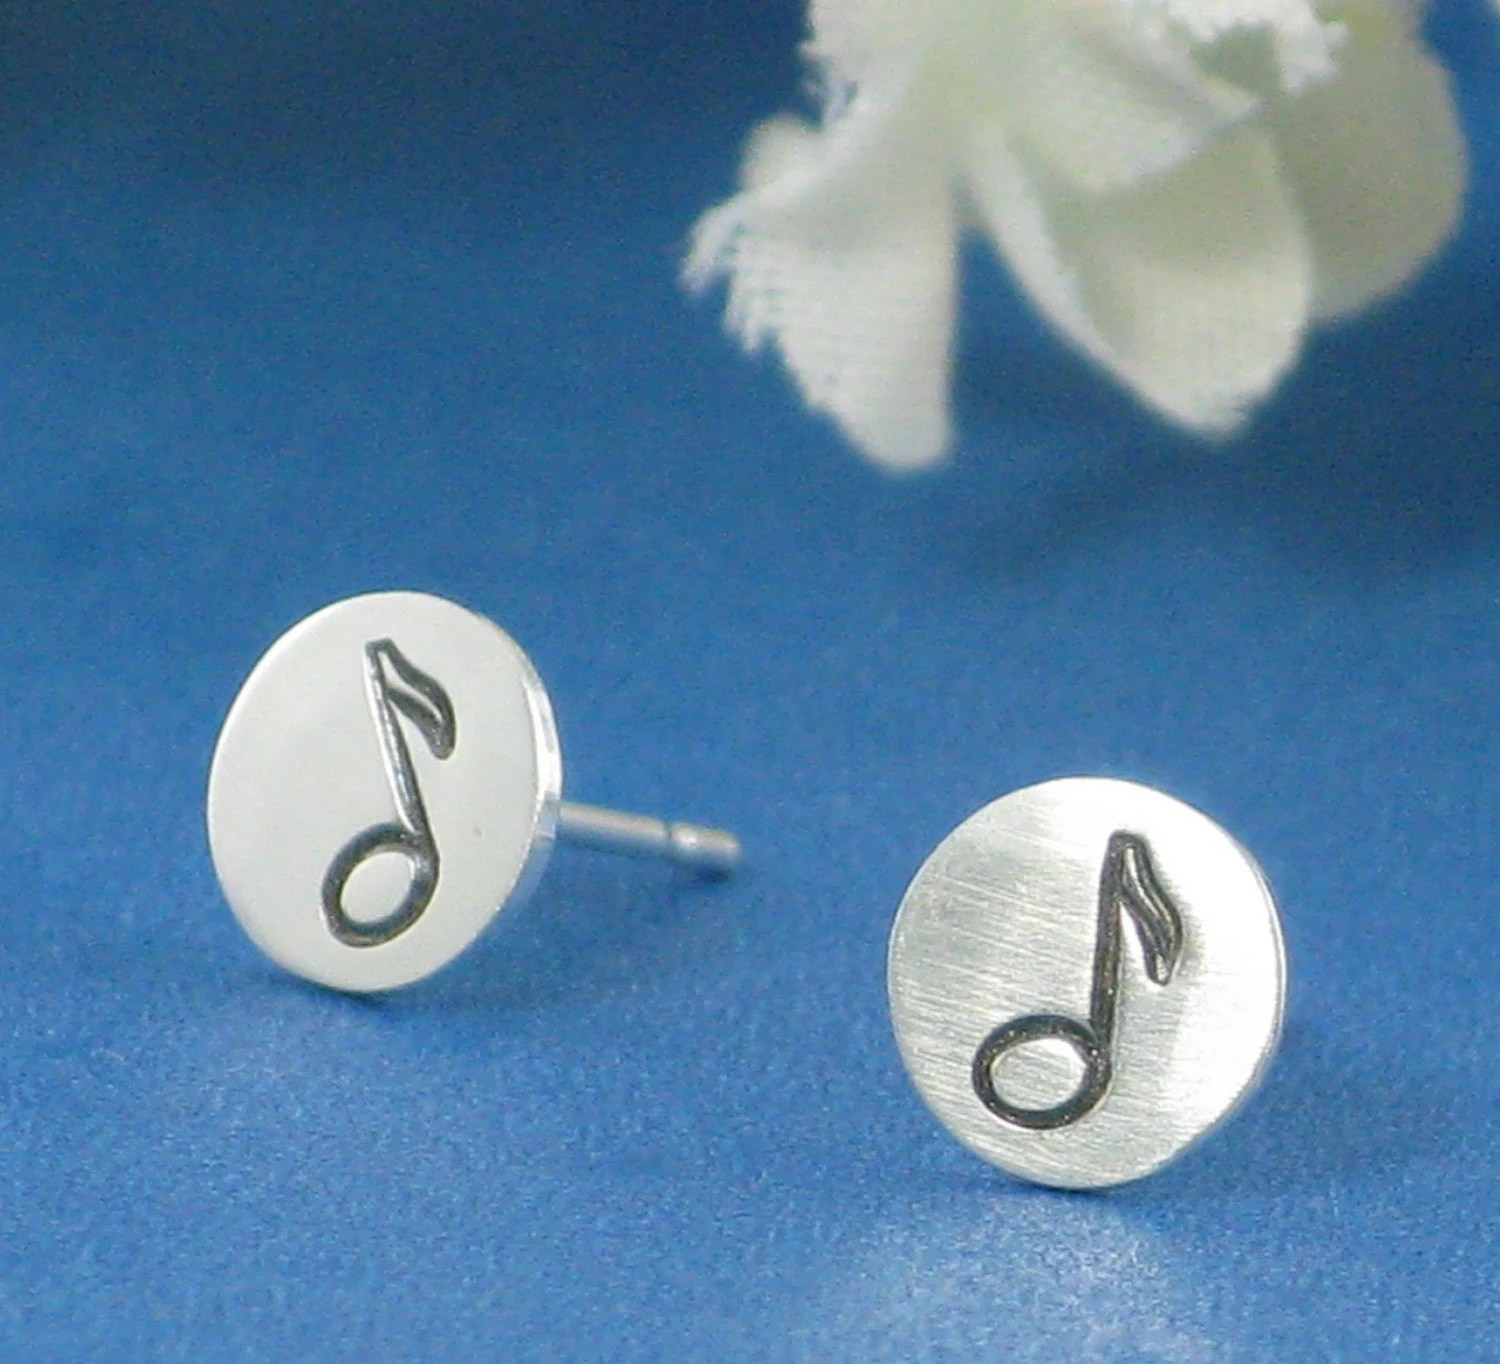 Music Note Stud Earrings - in sterling silver